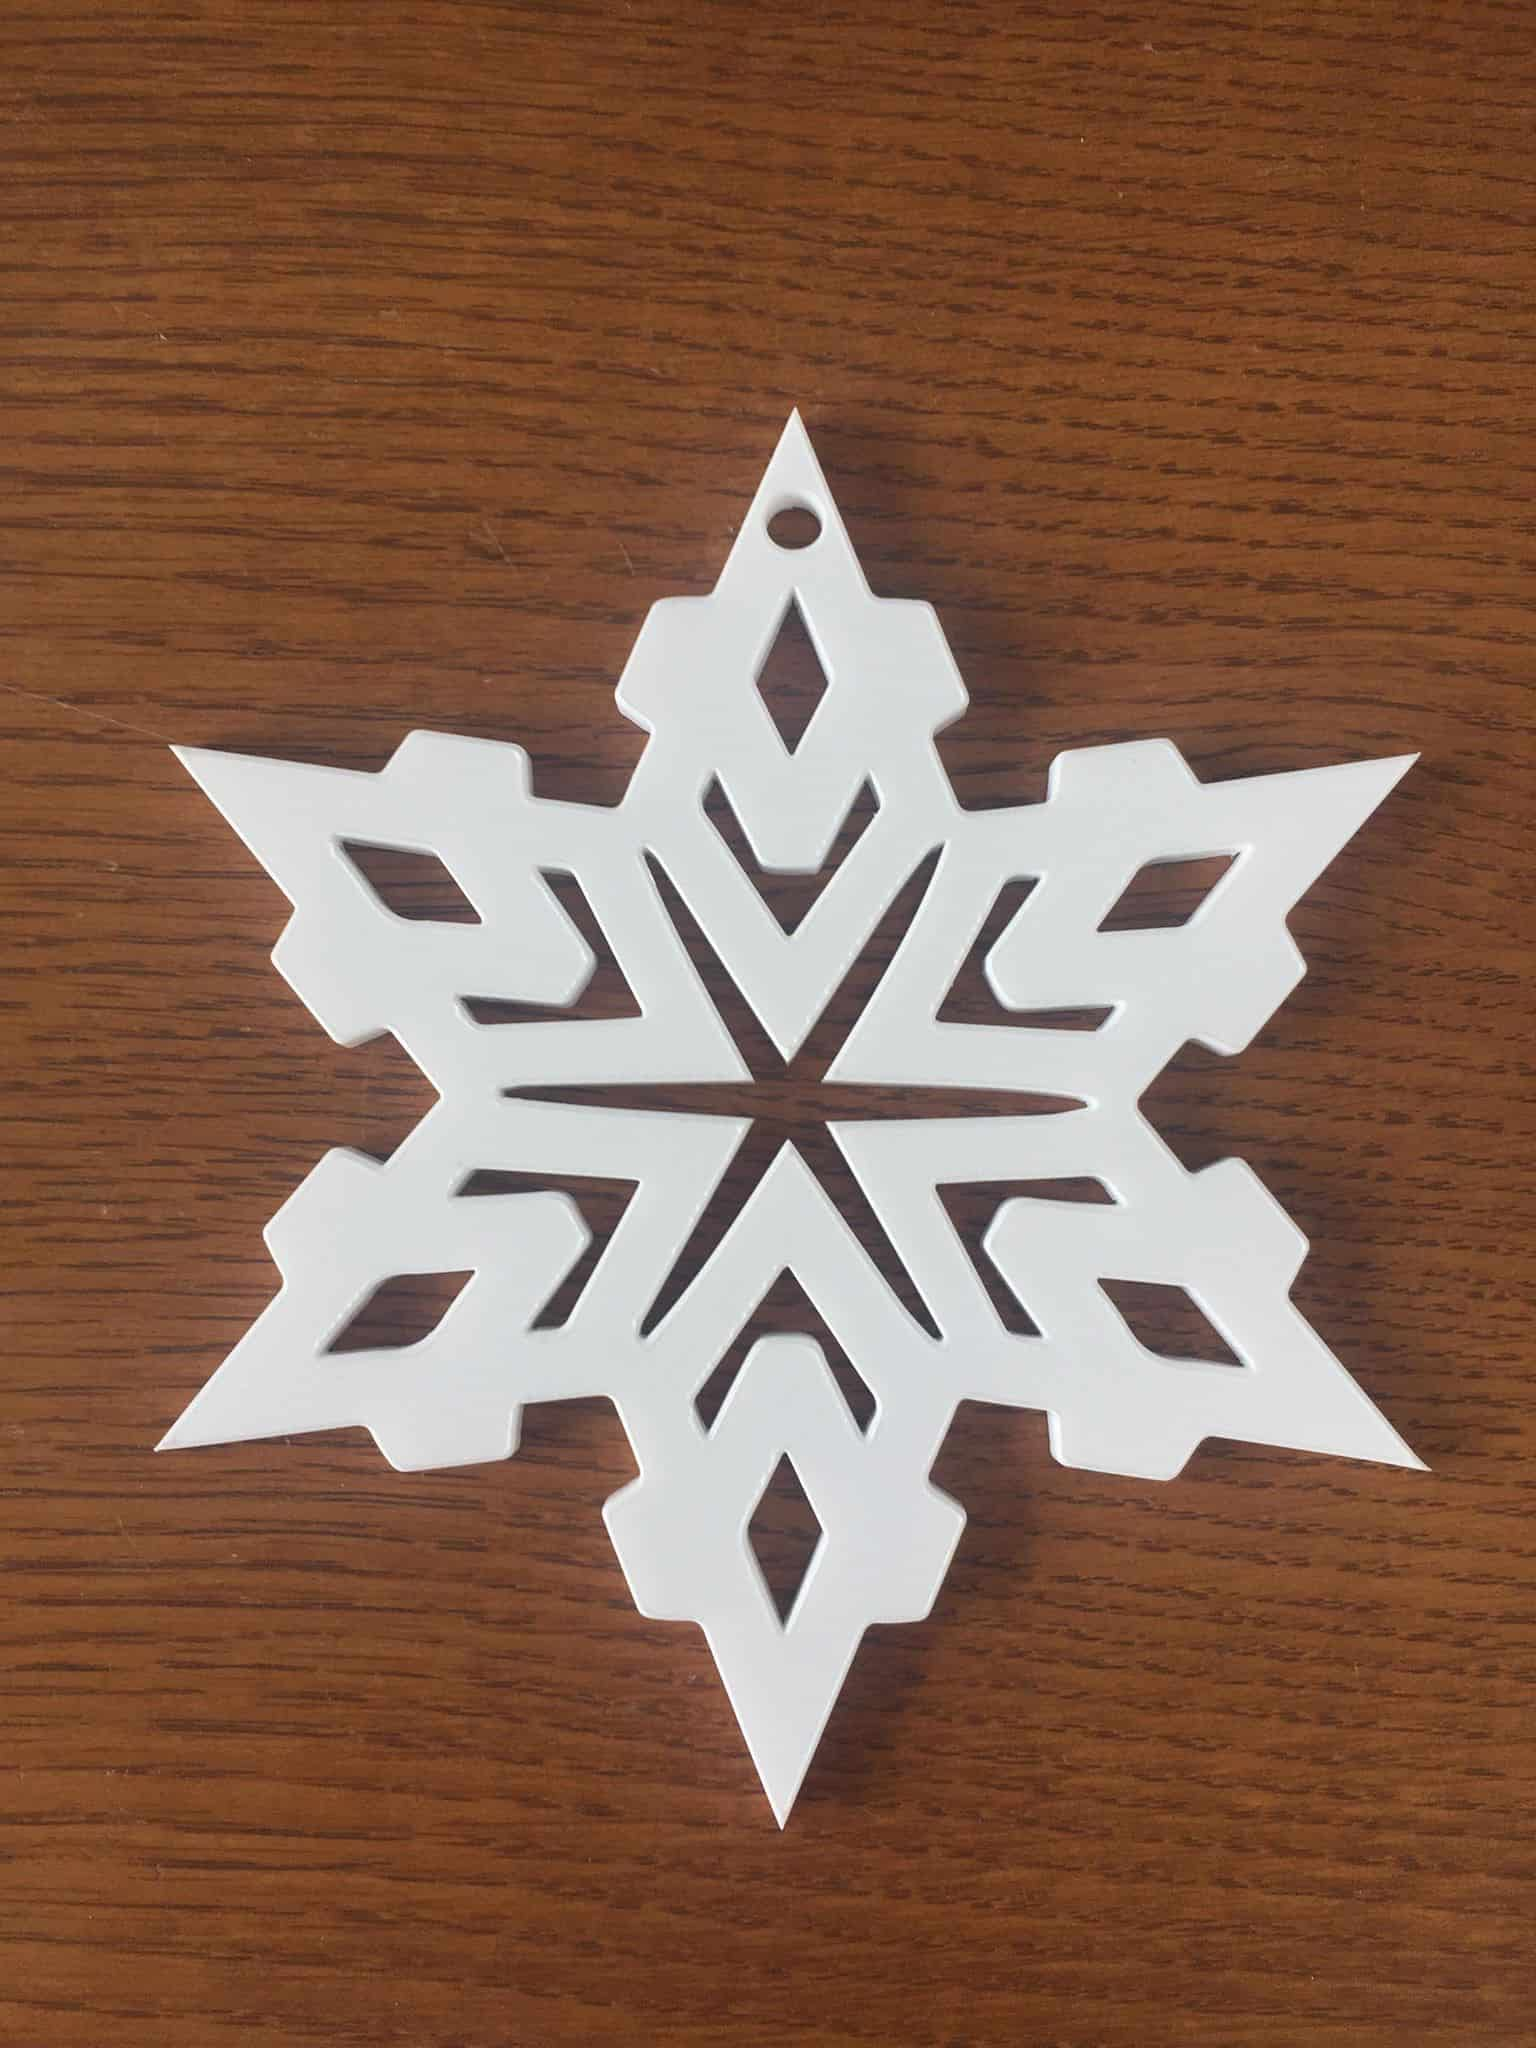 shape we're using for the 2019 Christmas Memorial Snowflake Ornaments